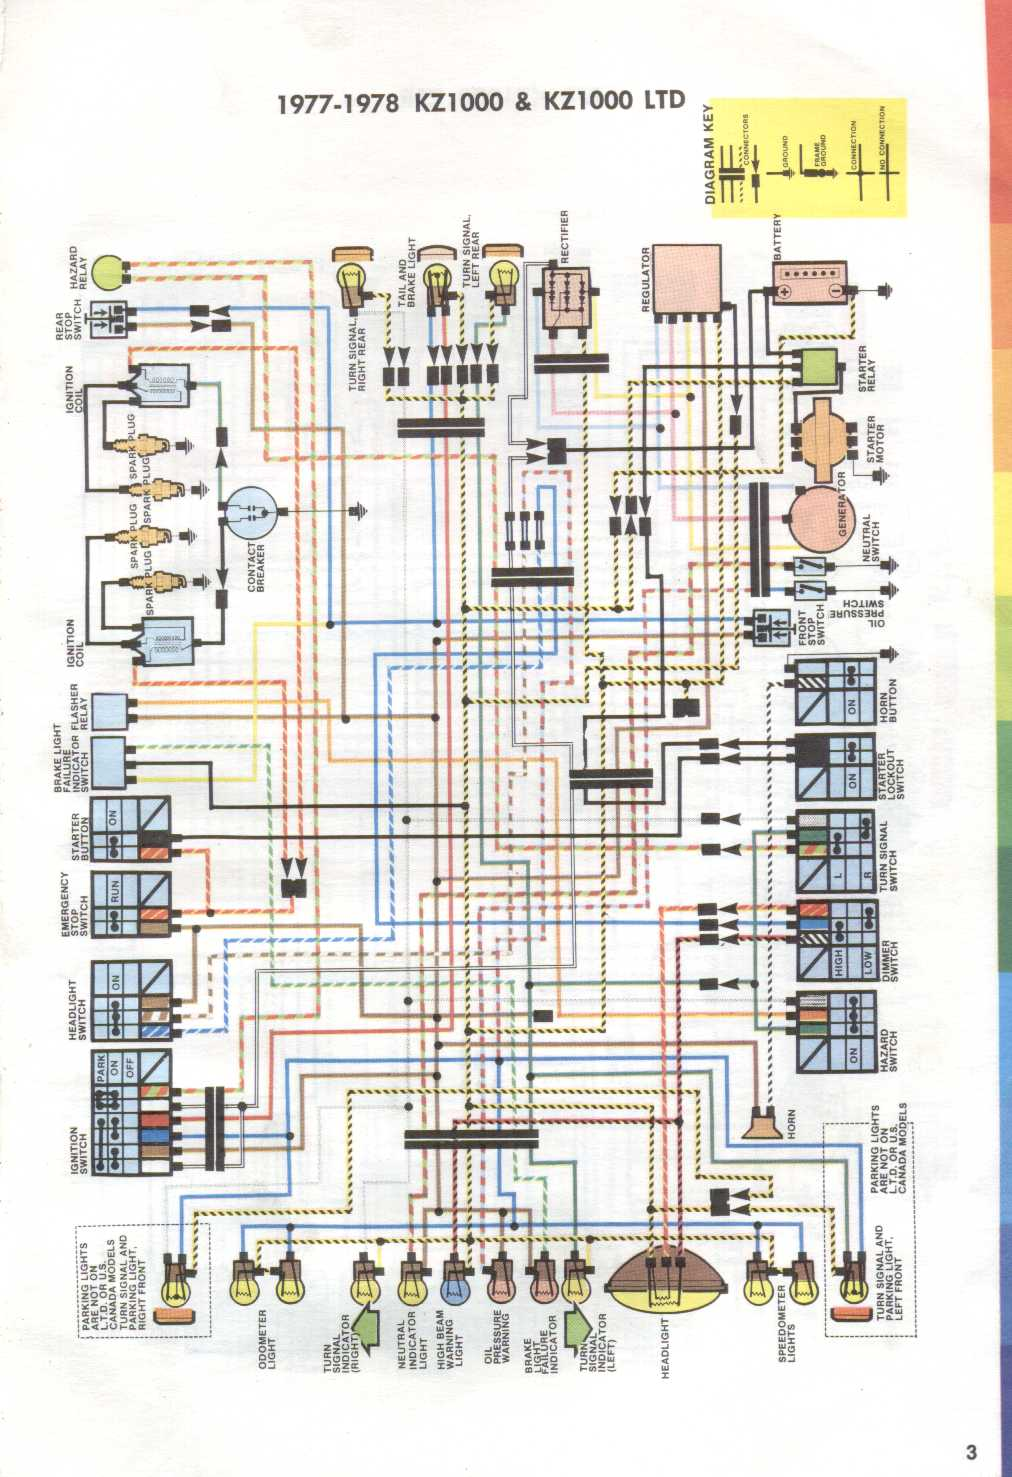 Wiring Diagram For 1977 1978 Kawasaki Kz1000 And Kz1000ltd Evan 4 Pin Ke Light Switch Mar 30